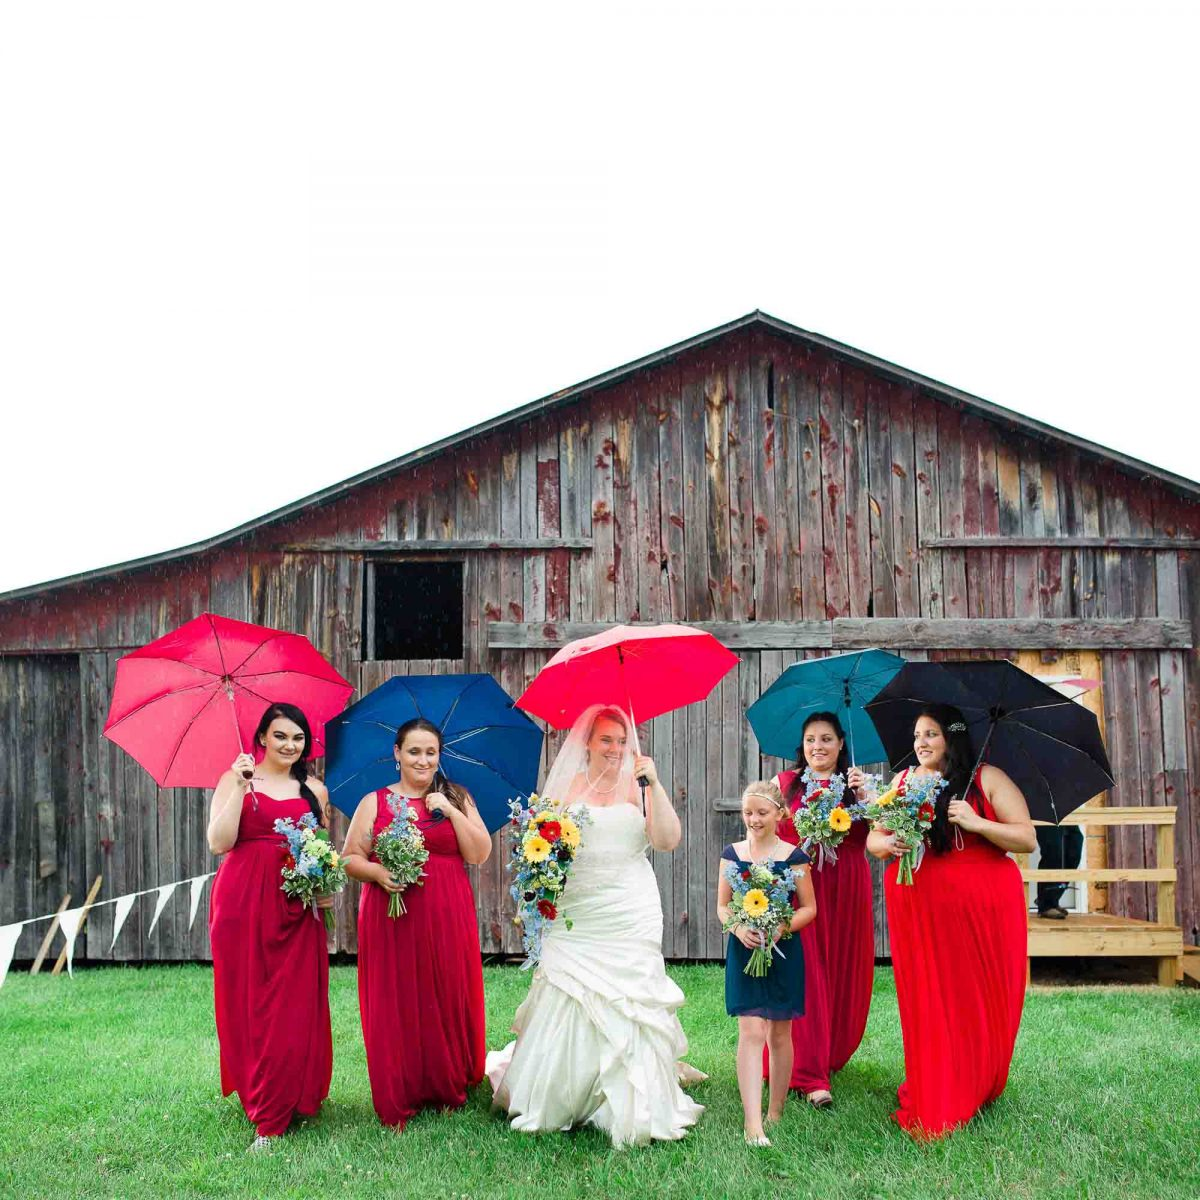 bride and bridesmaids under umbrellas in the rain at Stinnett Farm in Rogersville